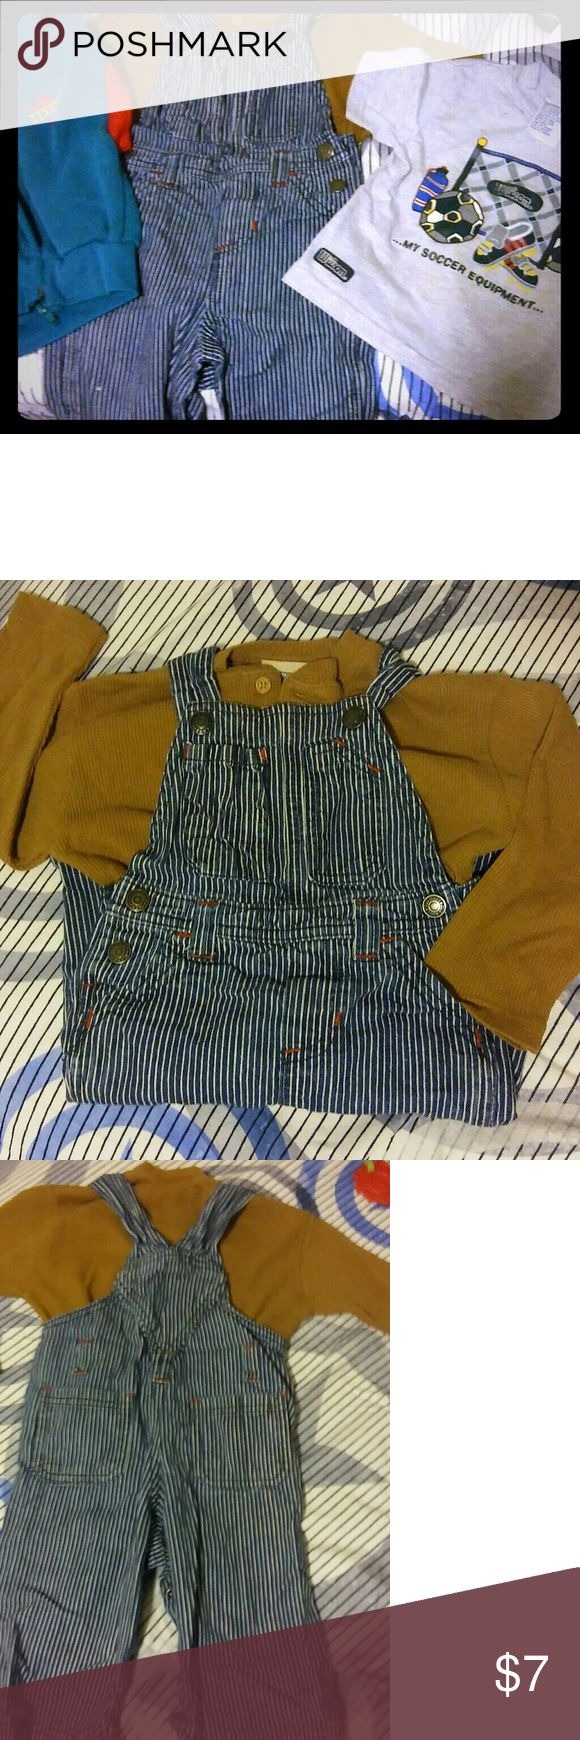 Overalls with 2 shirts and a vest Adorable Old Navy stripped overalls size 12-18 month.  Brown long sleeve shirt, wilson sports themed t-shirt and a cute hooded vest with a firetruck on it thrown in a bundle. Old Navy Bottoms Overalls